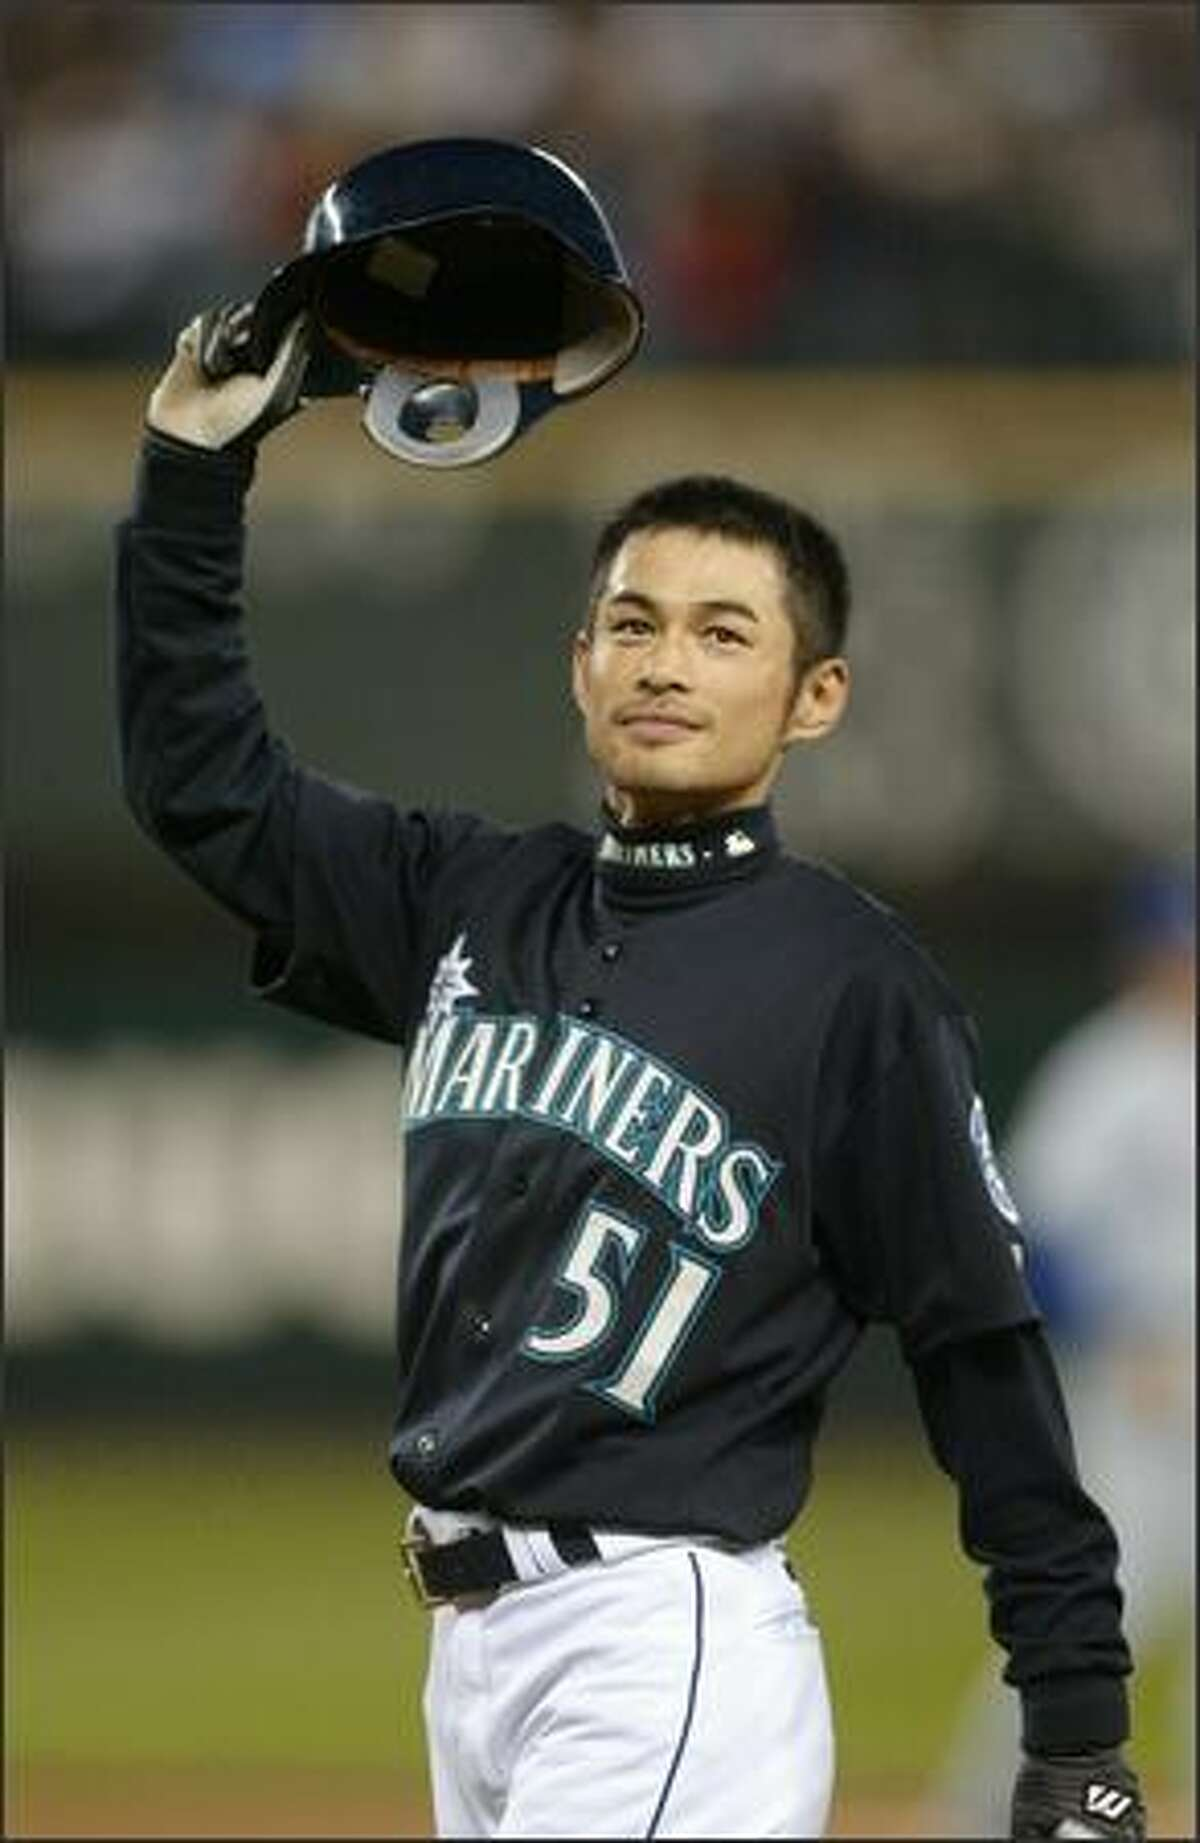 Ichiro Suzuki tips his helmet to cheering fans at Safeco Field last night after breaking the record for hits.See more photos from this historic game.